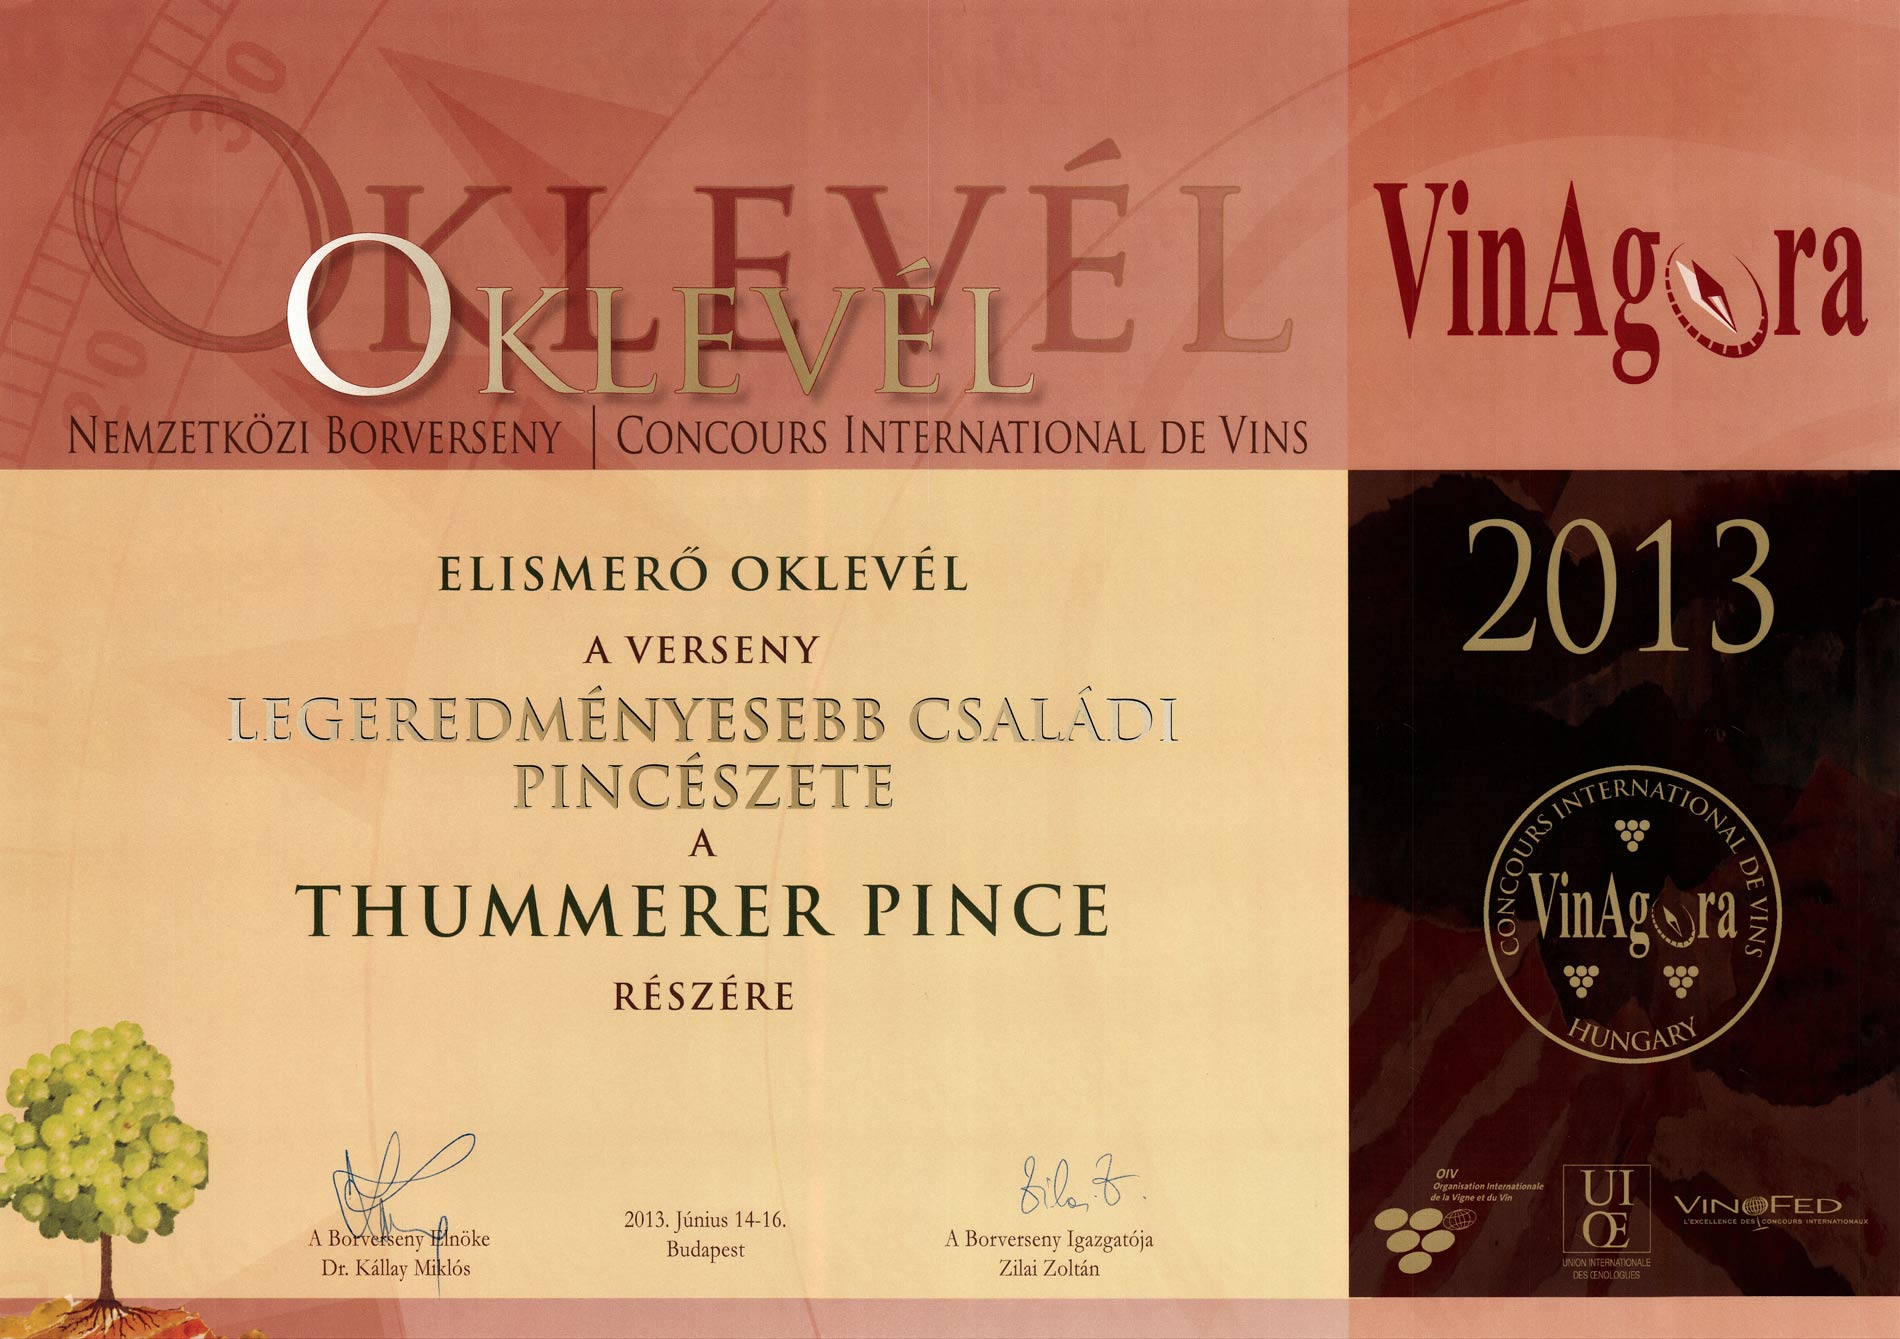 The most efficient Family Wine Cellar of Hungary